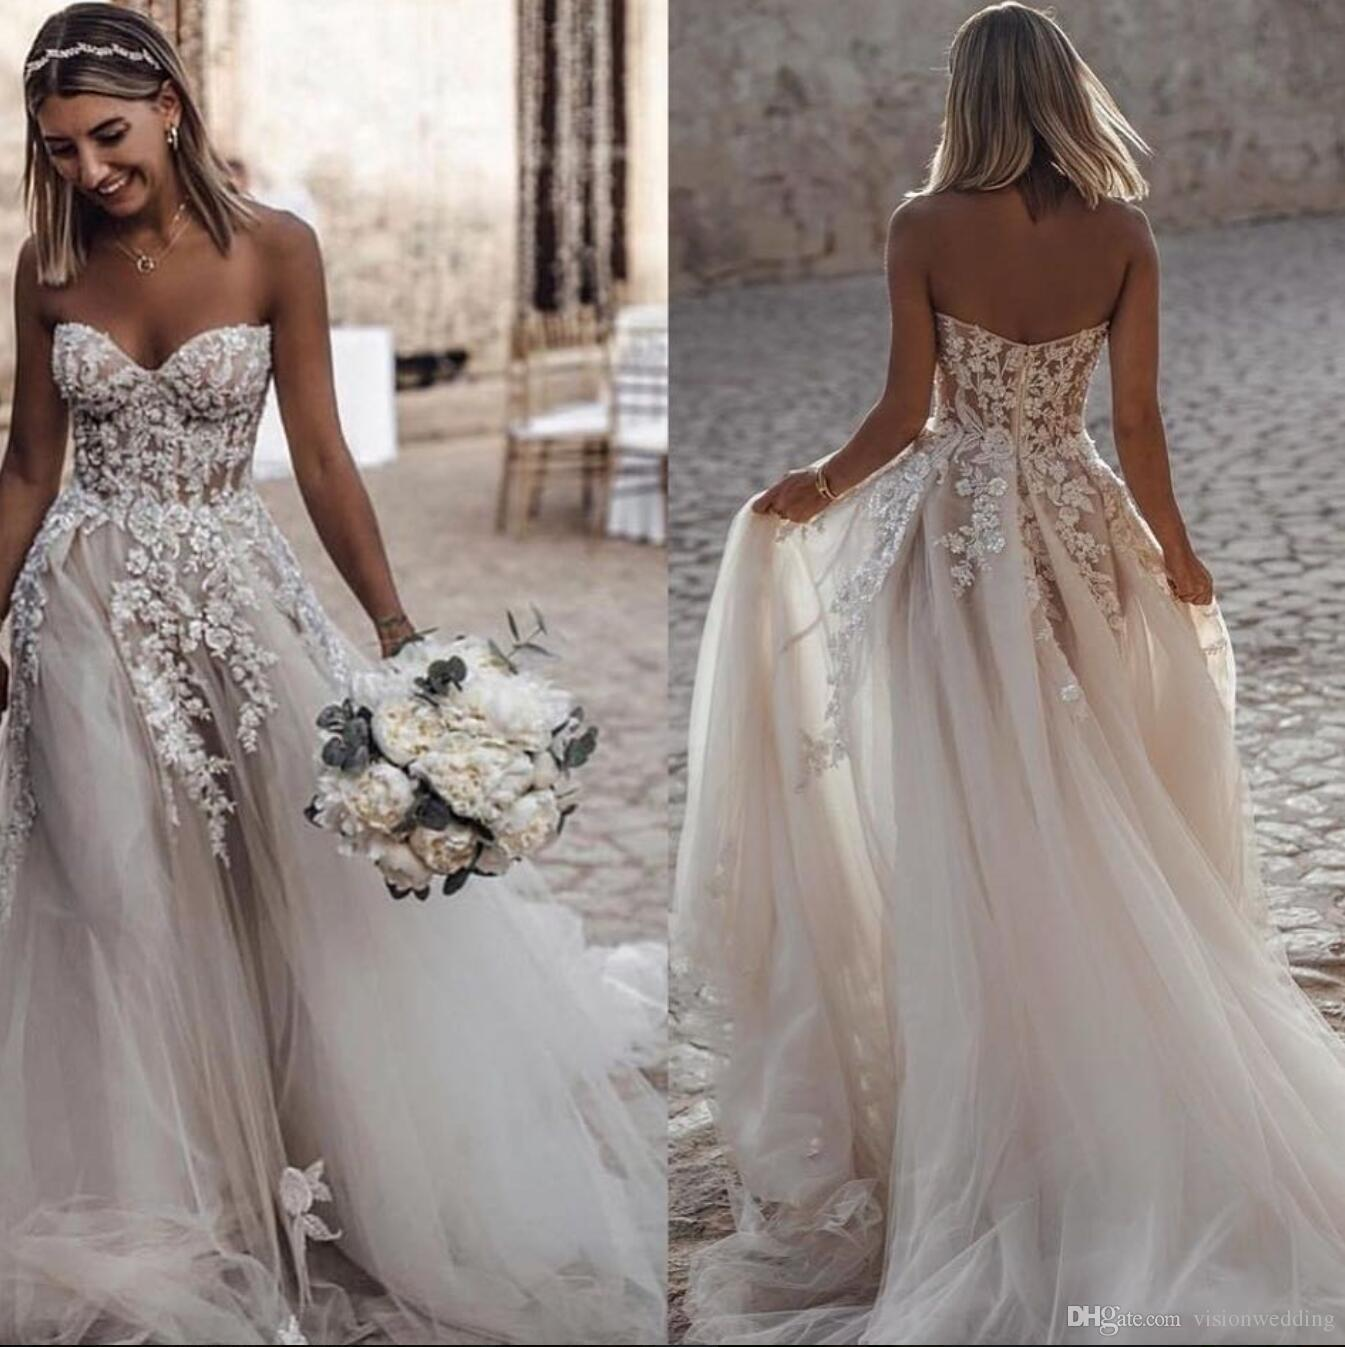 Beach Wedding Gown: Discount Beach Wedding Dresses A Line Tulle 3D Applique